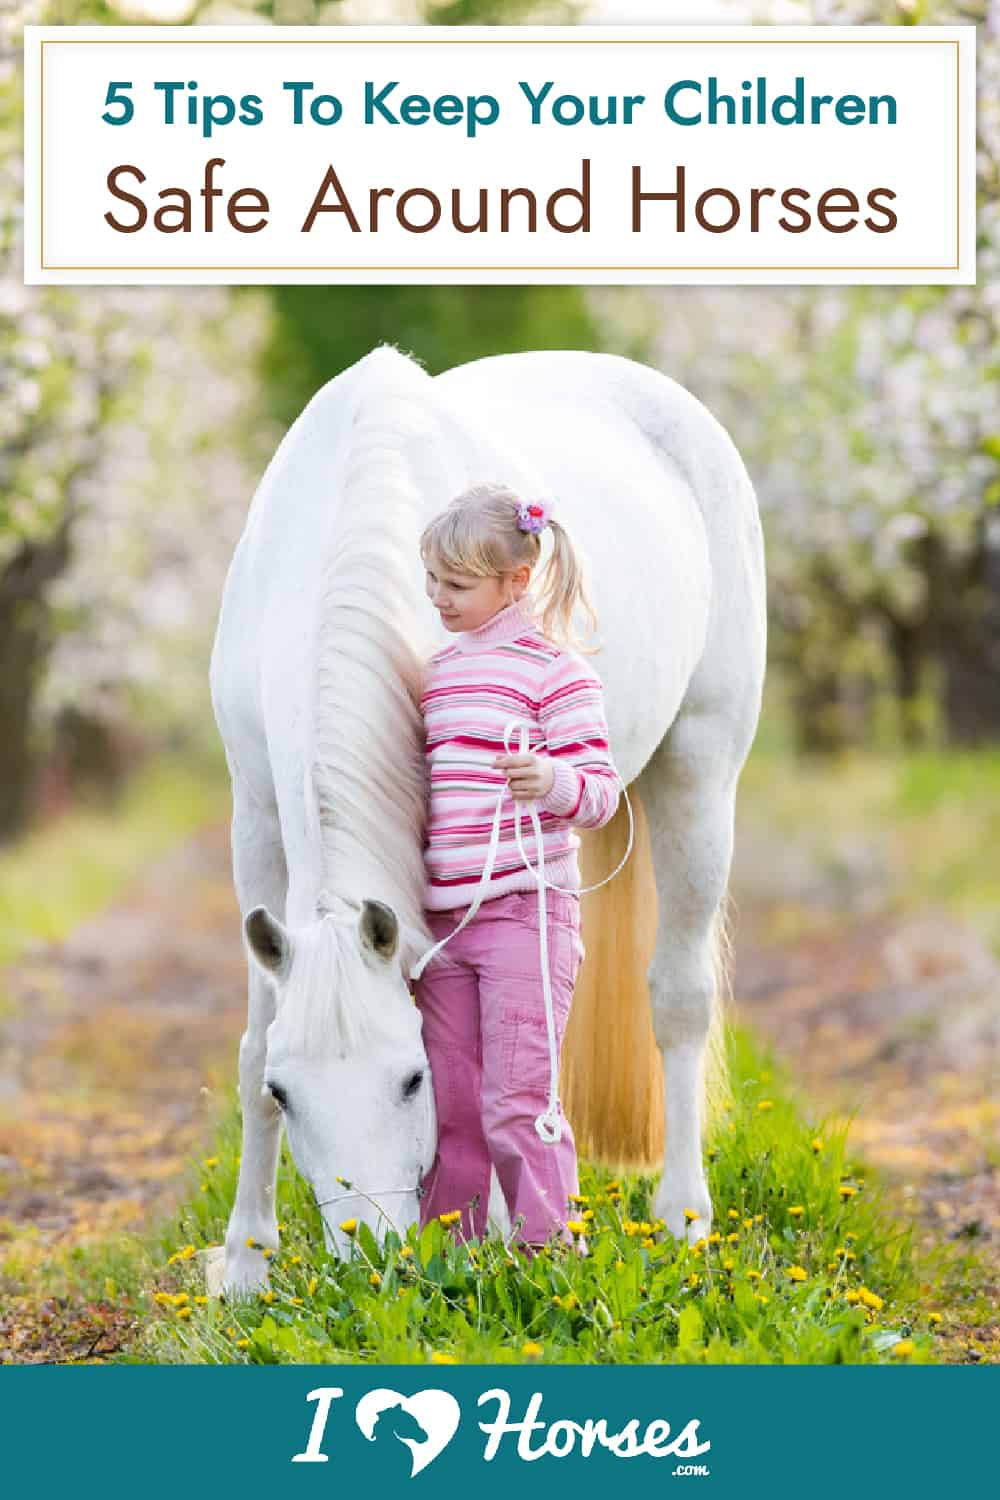 Important Tips For Child Safety Around Horses